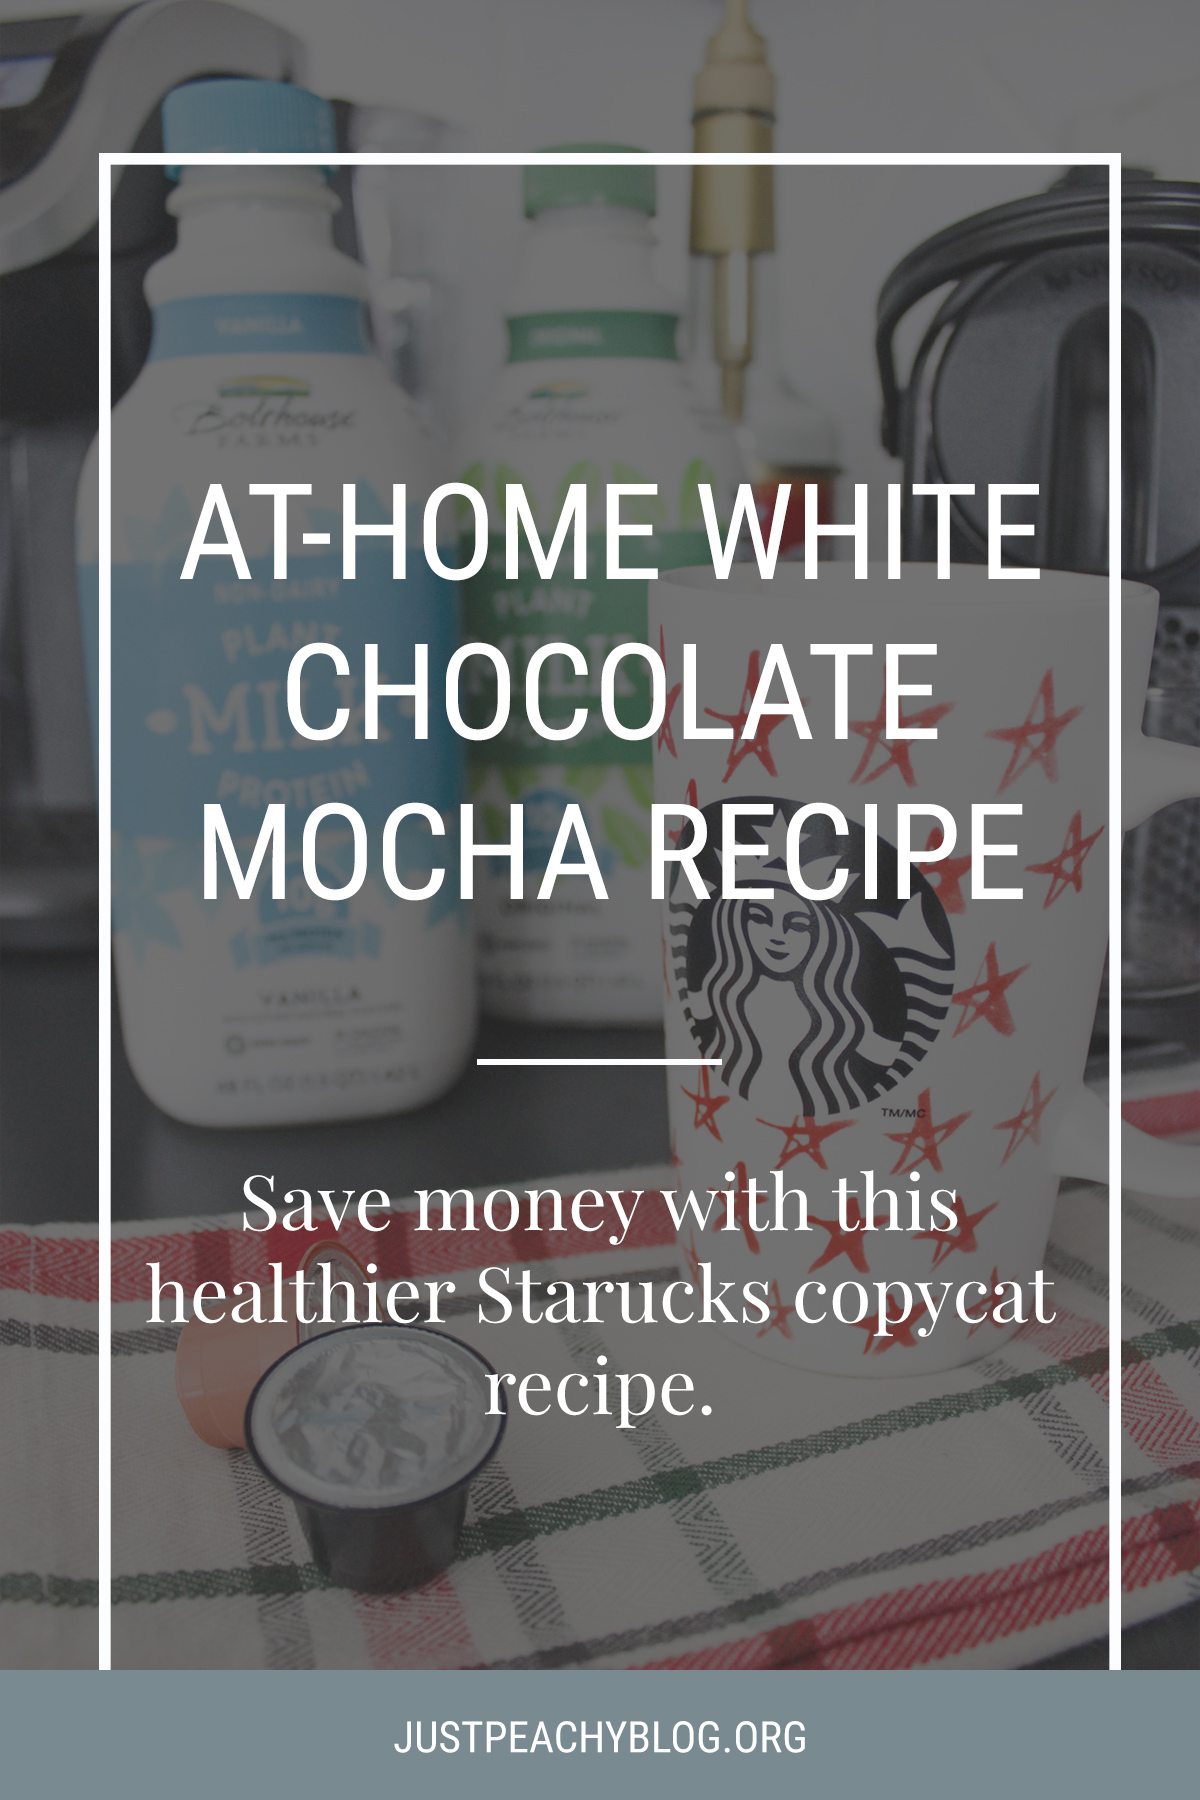 At Home White Chocolate Mocha Recipe | Starbucks Copycat